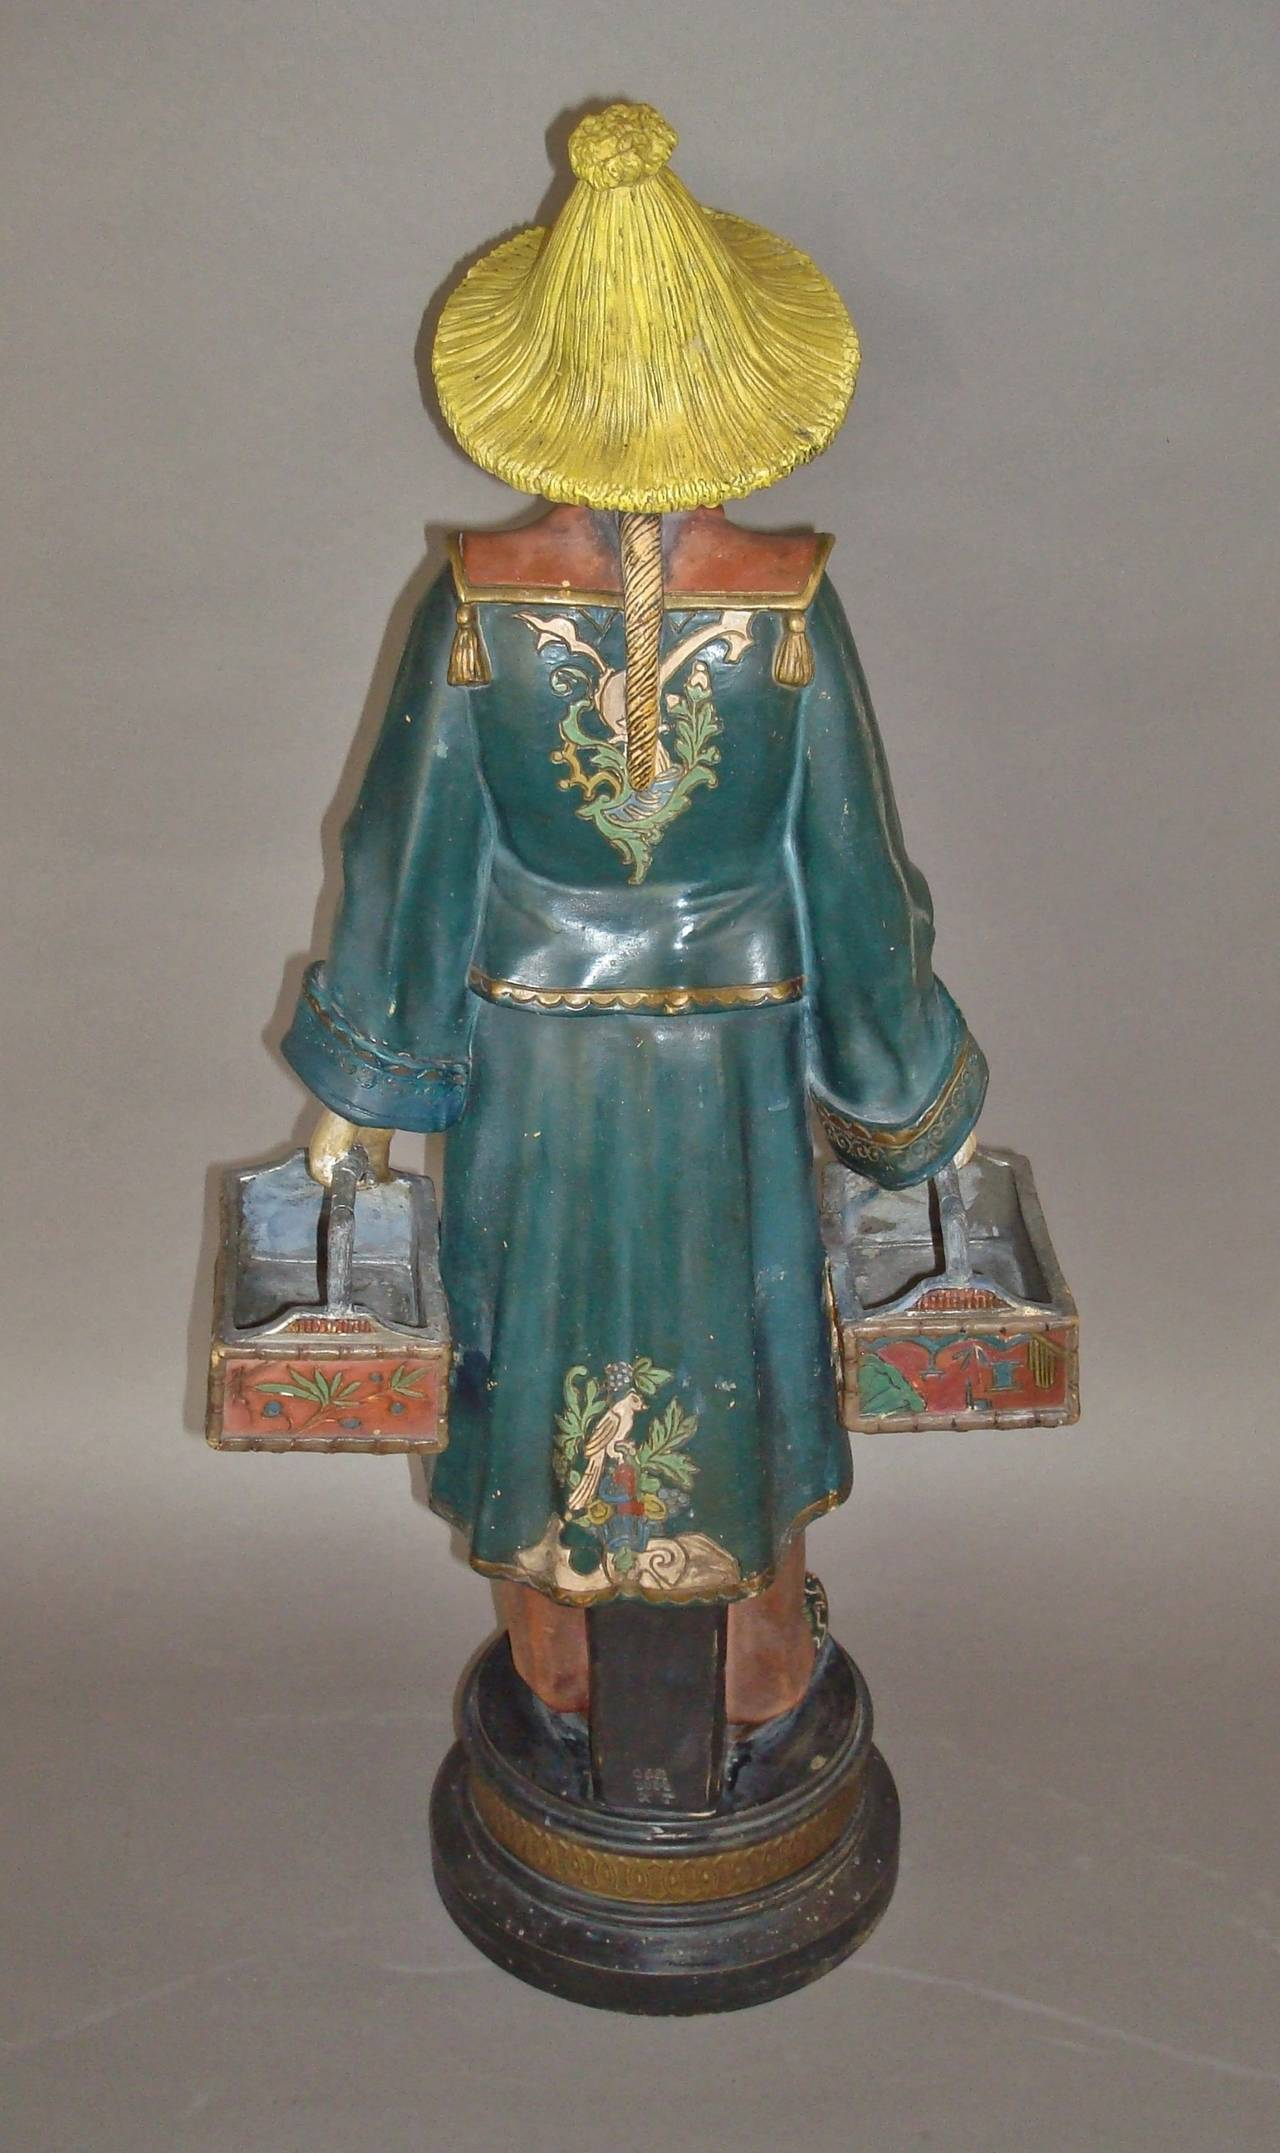 Polychromed 19th century Decorated Terracotta China Man Statue For Sale